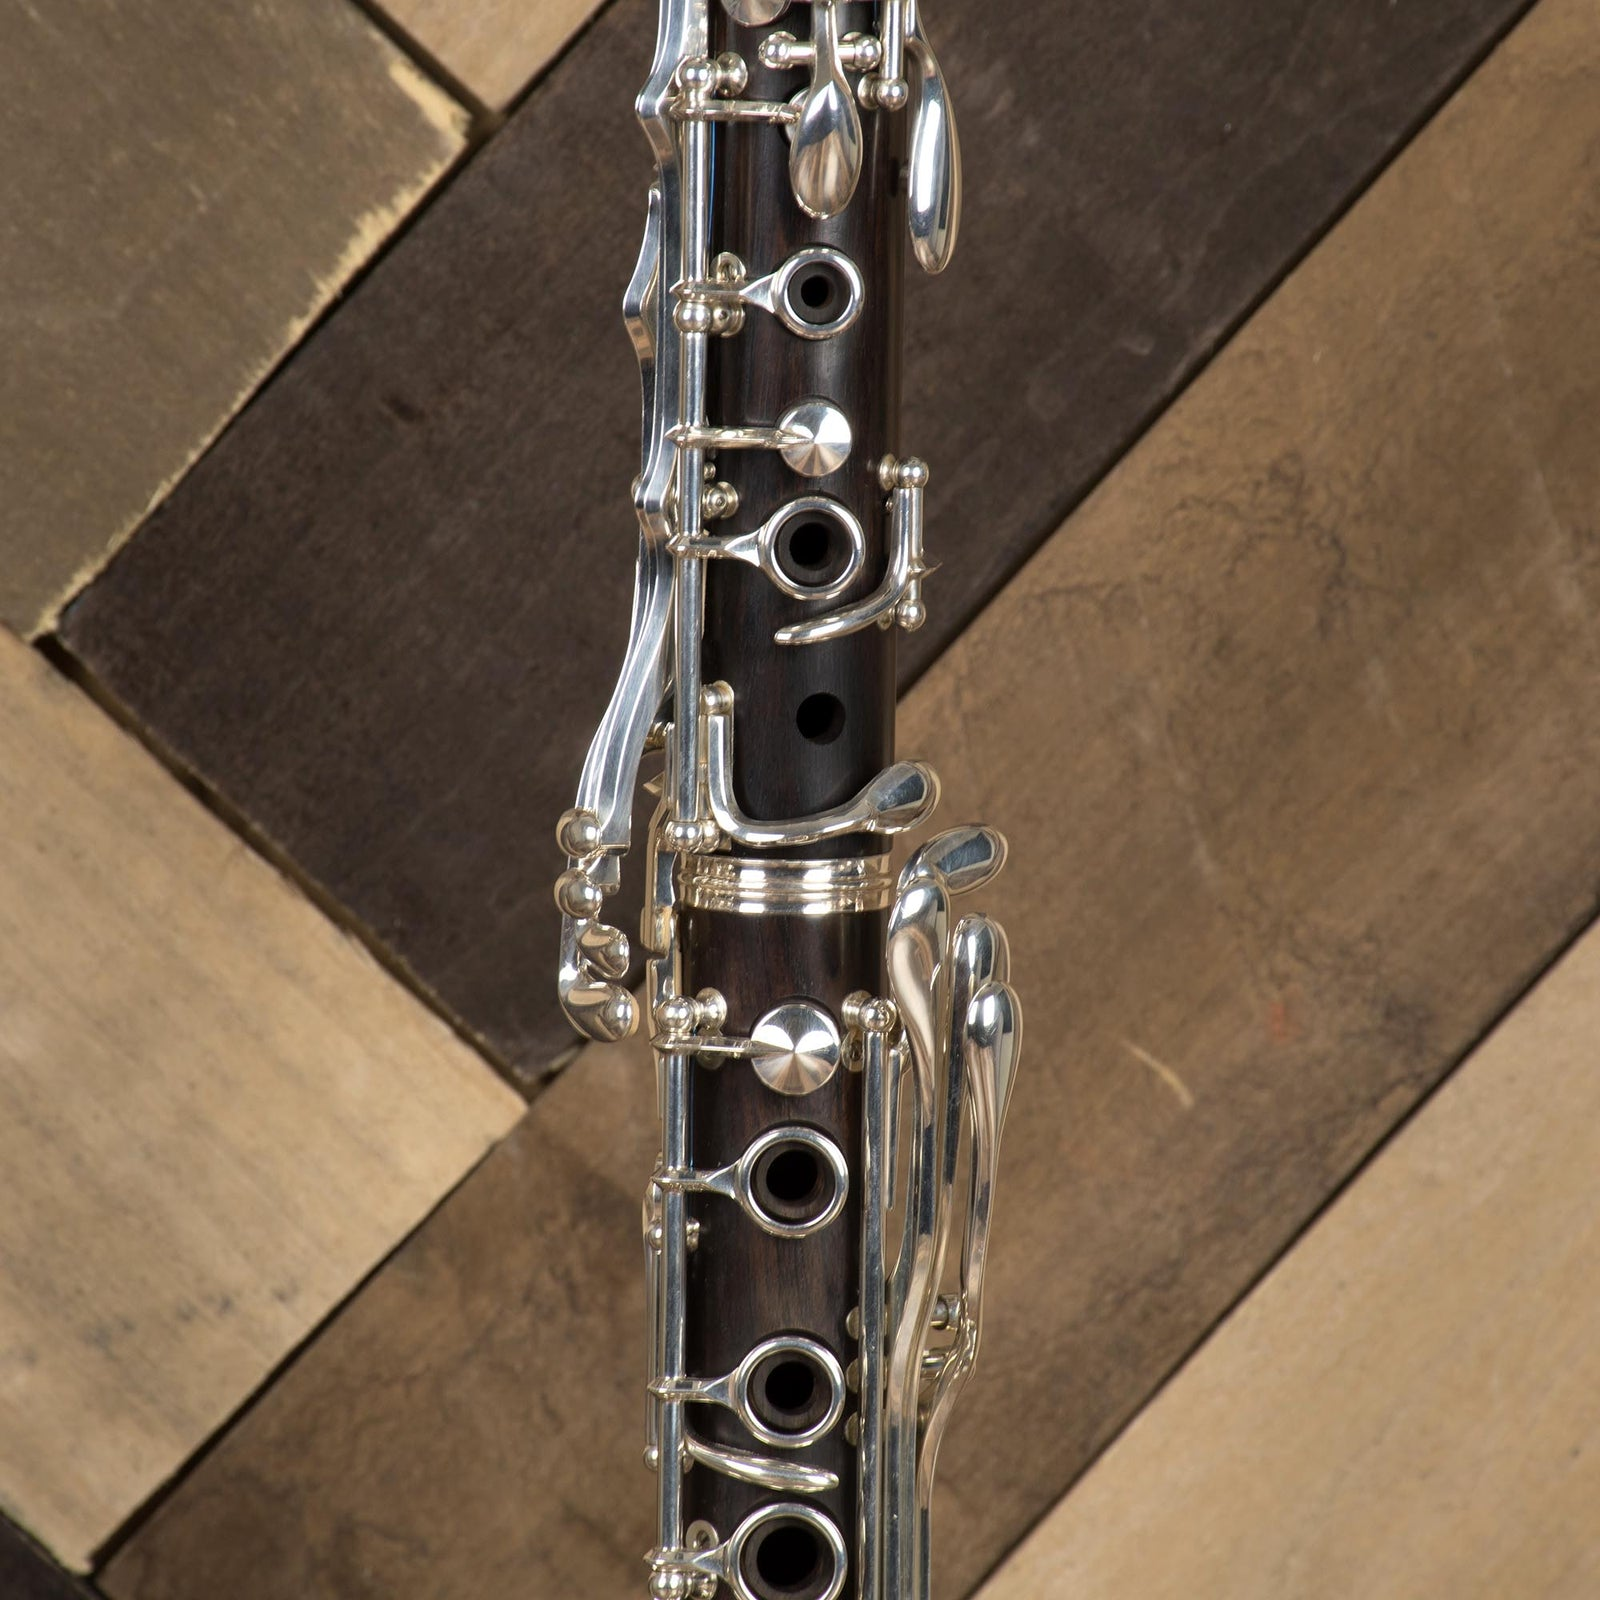 Prime Buffet R 13 Prestige A Professional Clarinet Used Download Free Architecture Designs Scobabritishbridgeorg